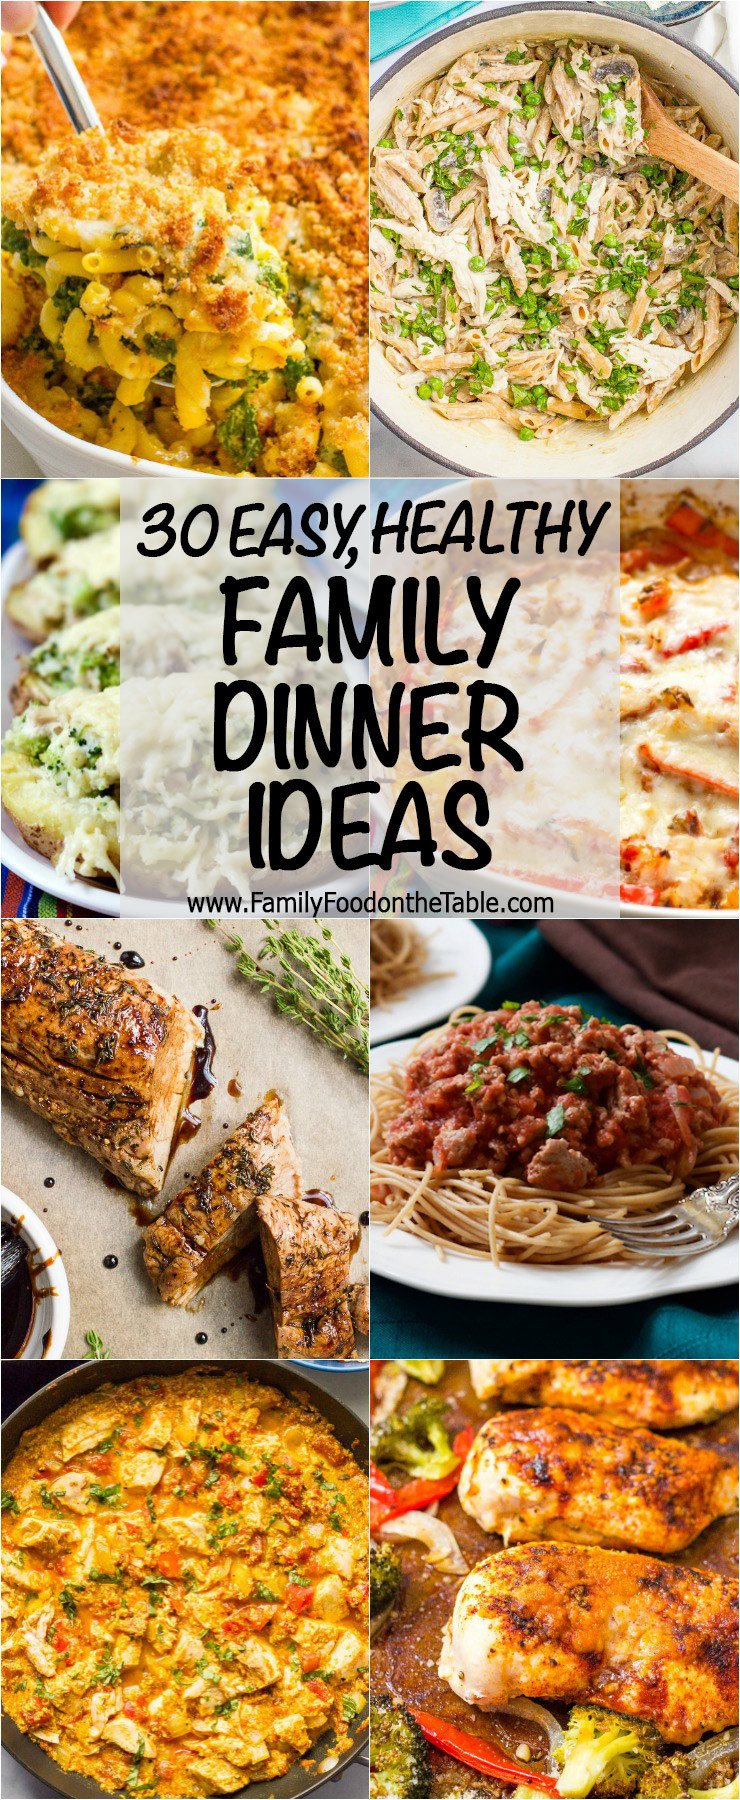 Healthy Family Dinner Recipes  30 easy healthy family dinner ideas Family Food on the Table